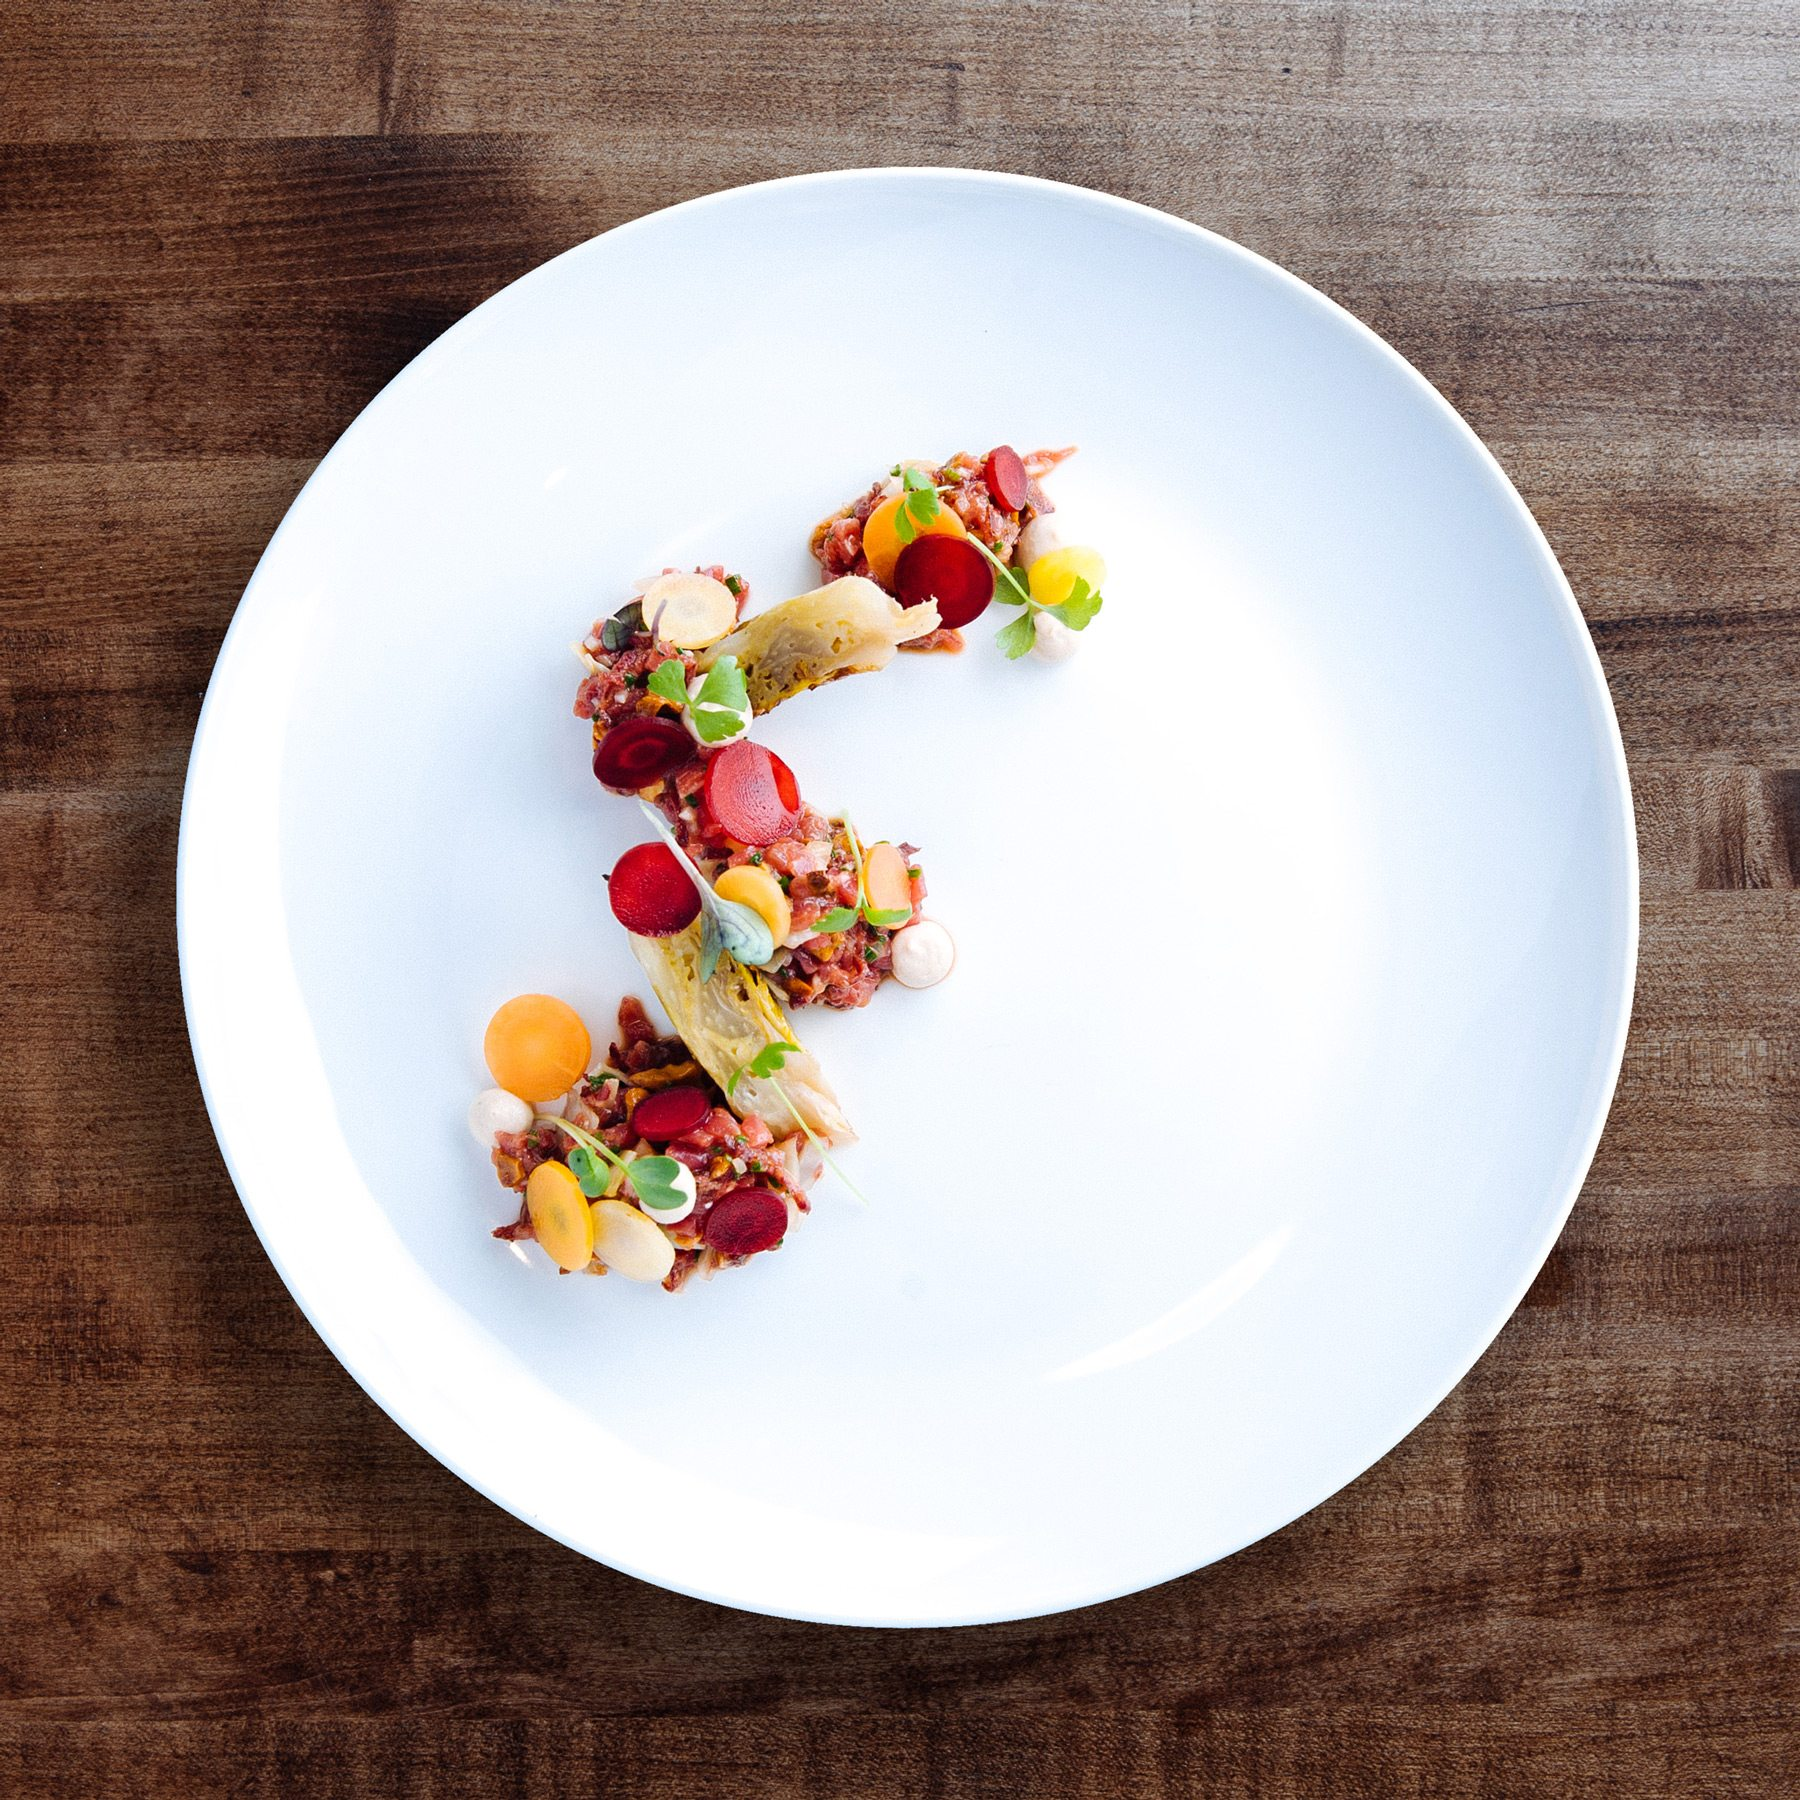 A beautifully plated beef tartare appetizer. Photo: Frazer Nagy of Transparent Kitchen